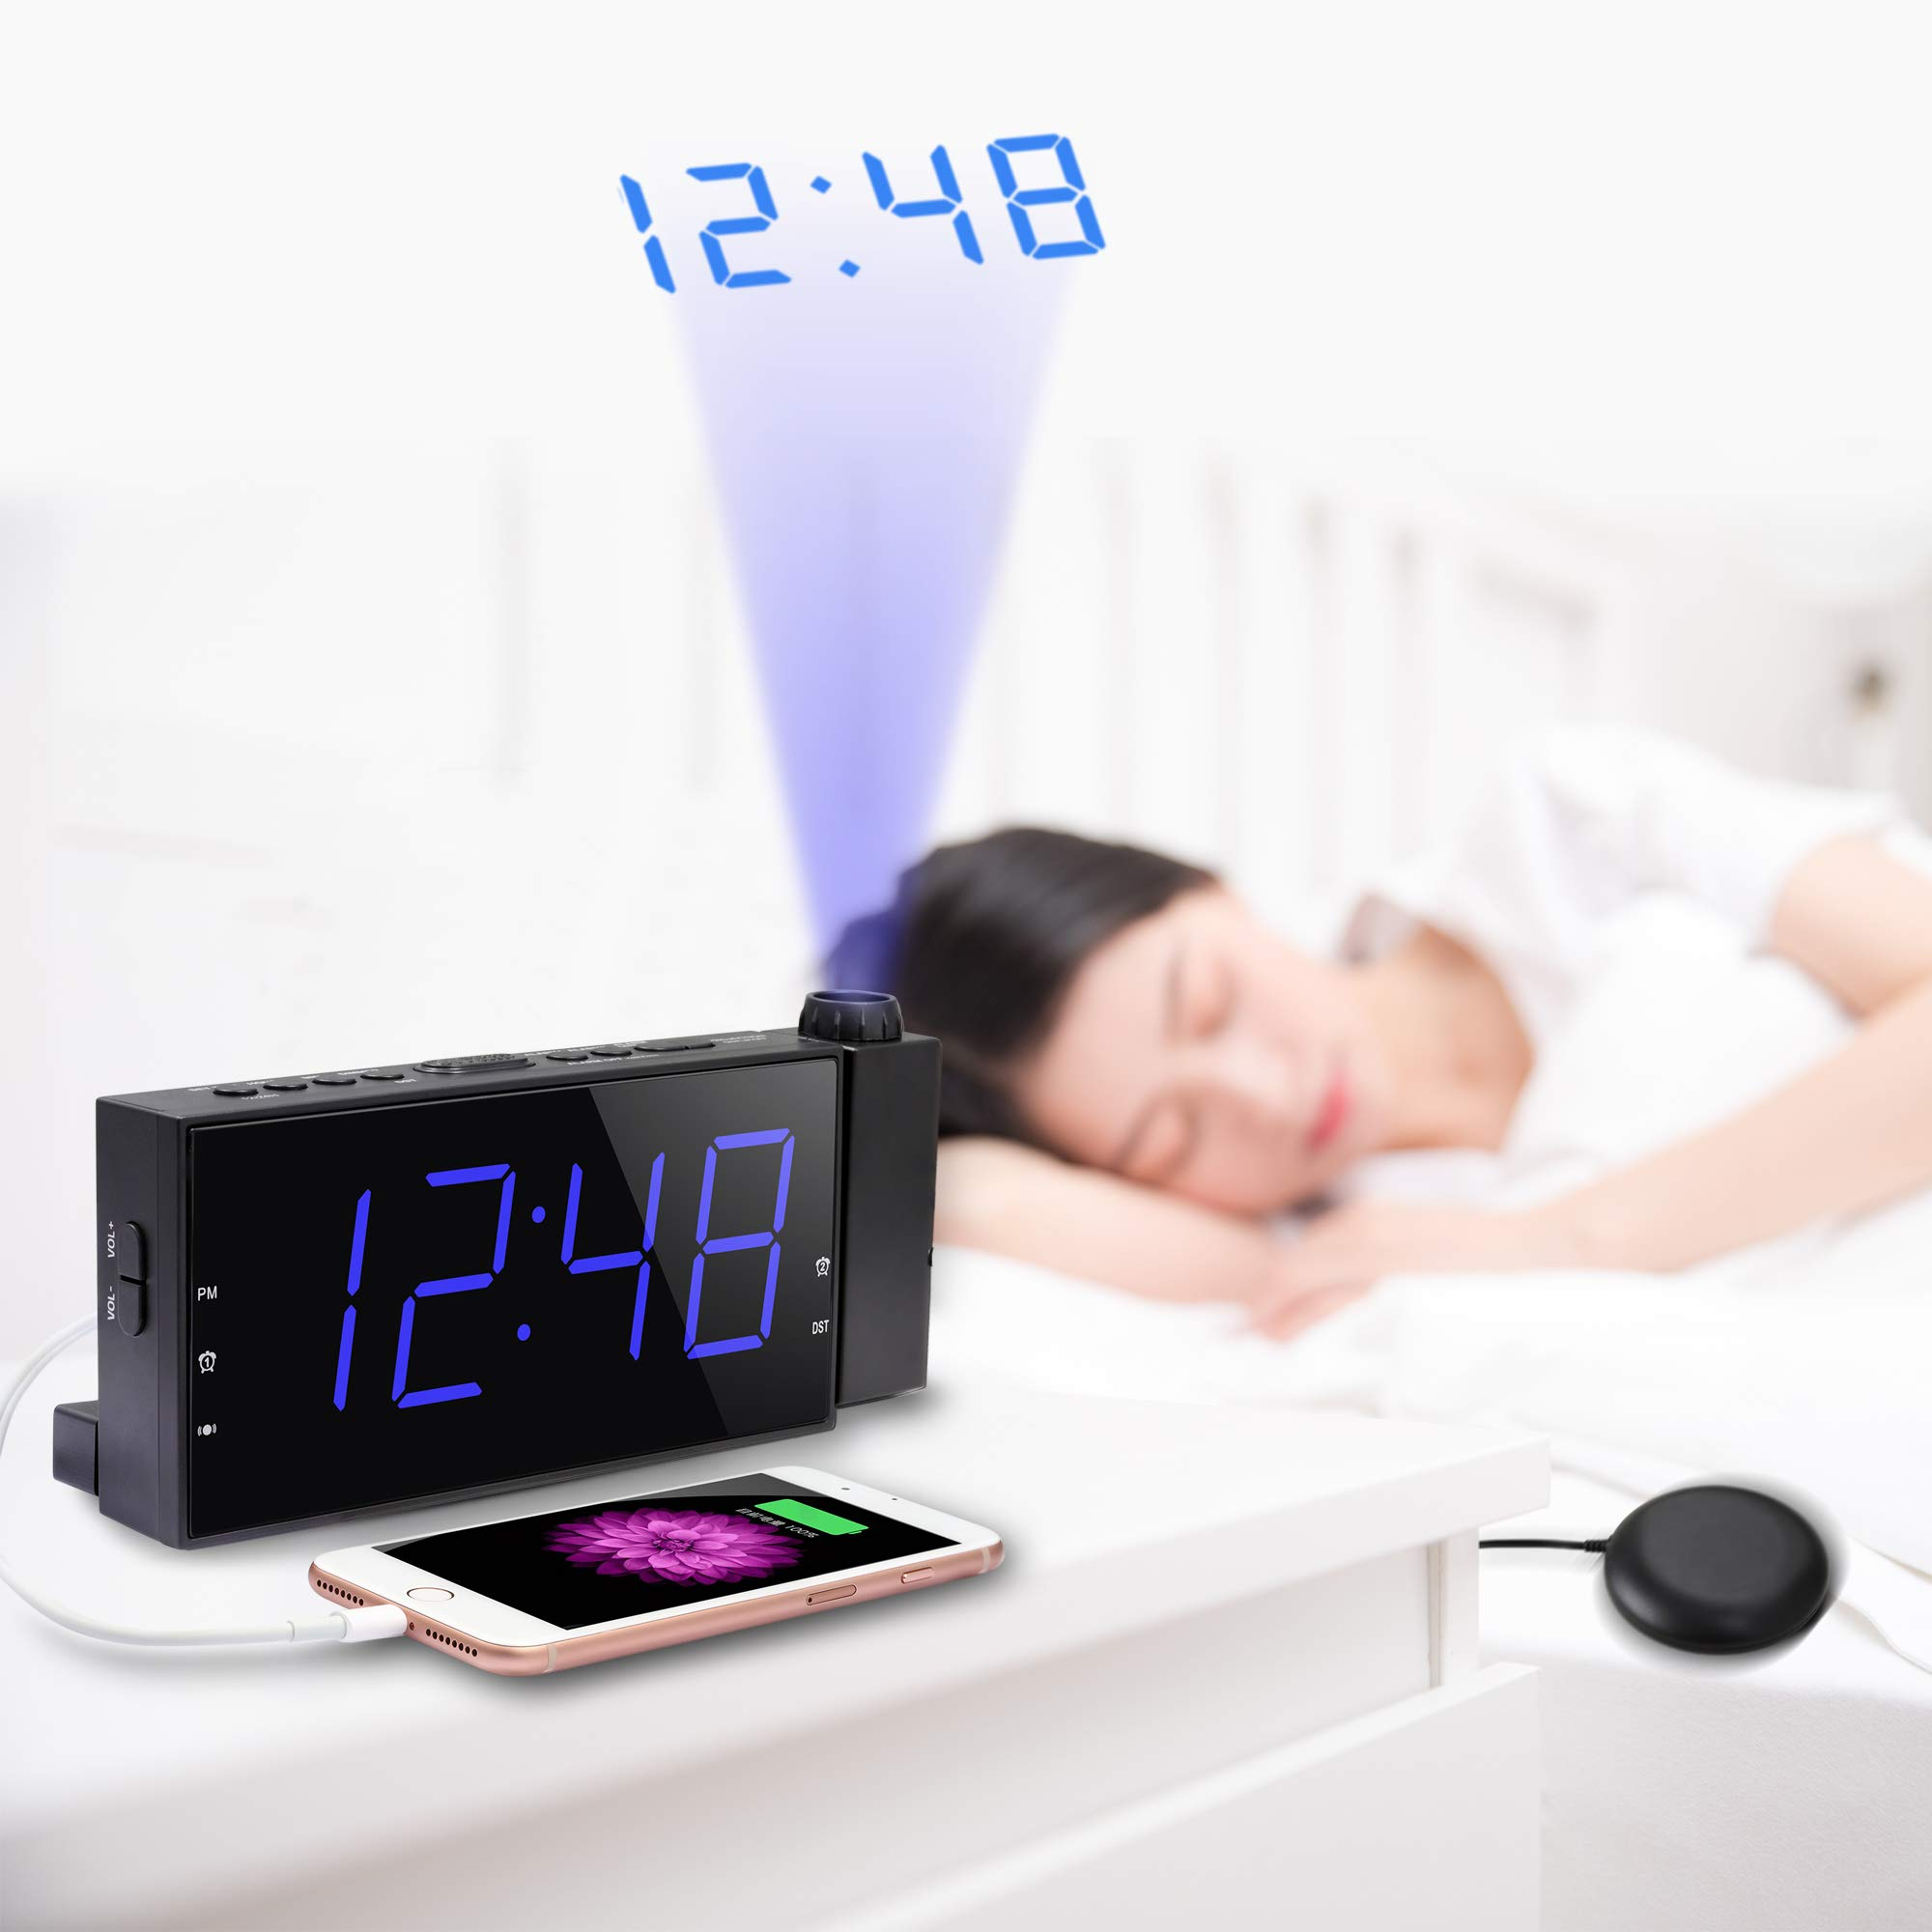 Mesqool Projection Alarm Clock with Bed Shaker, Loud Alarm Sound & Vibrating Projector Clock for Heavy Sleepers, 7\